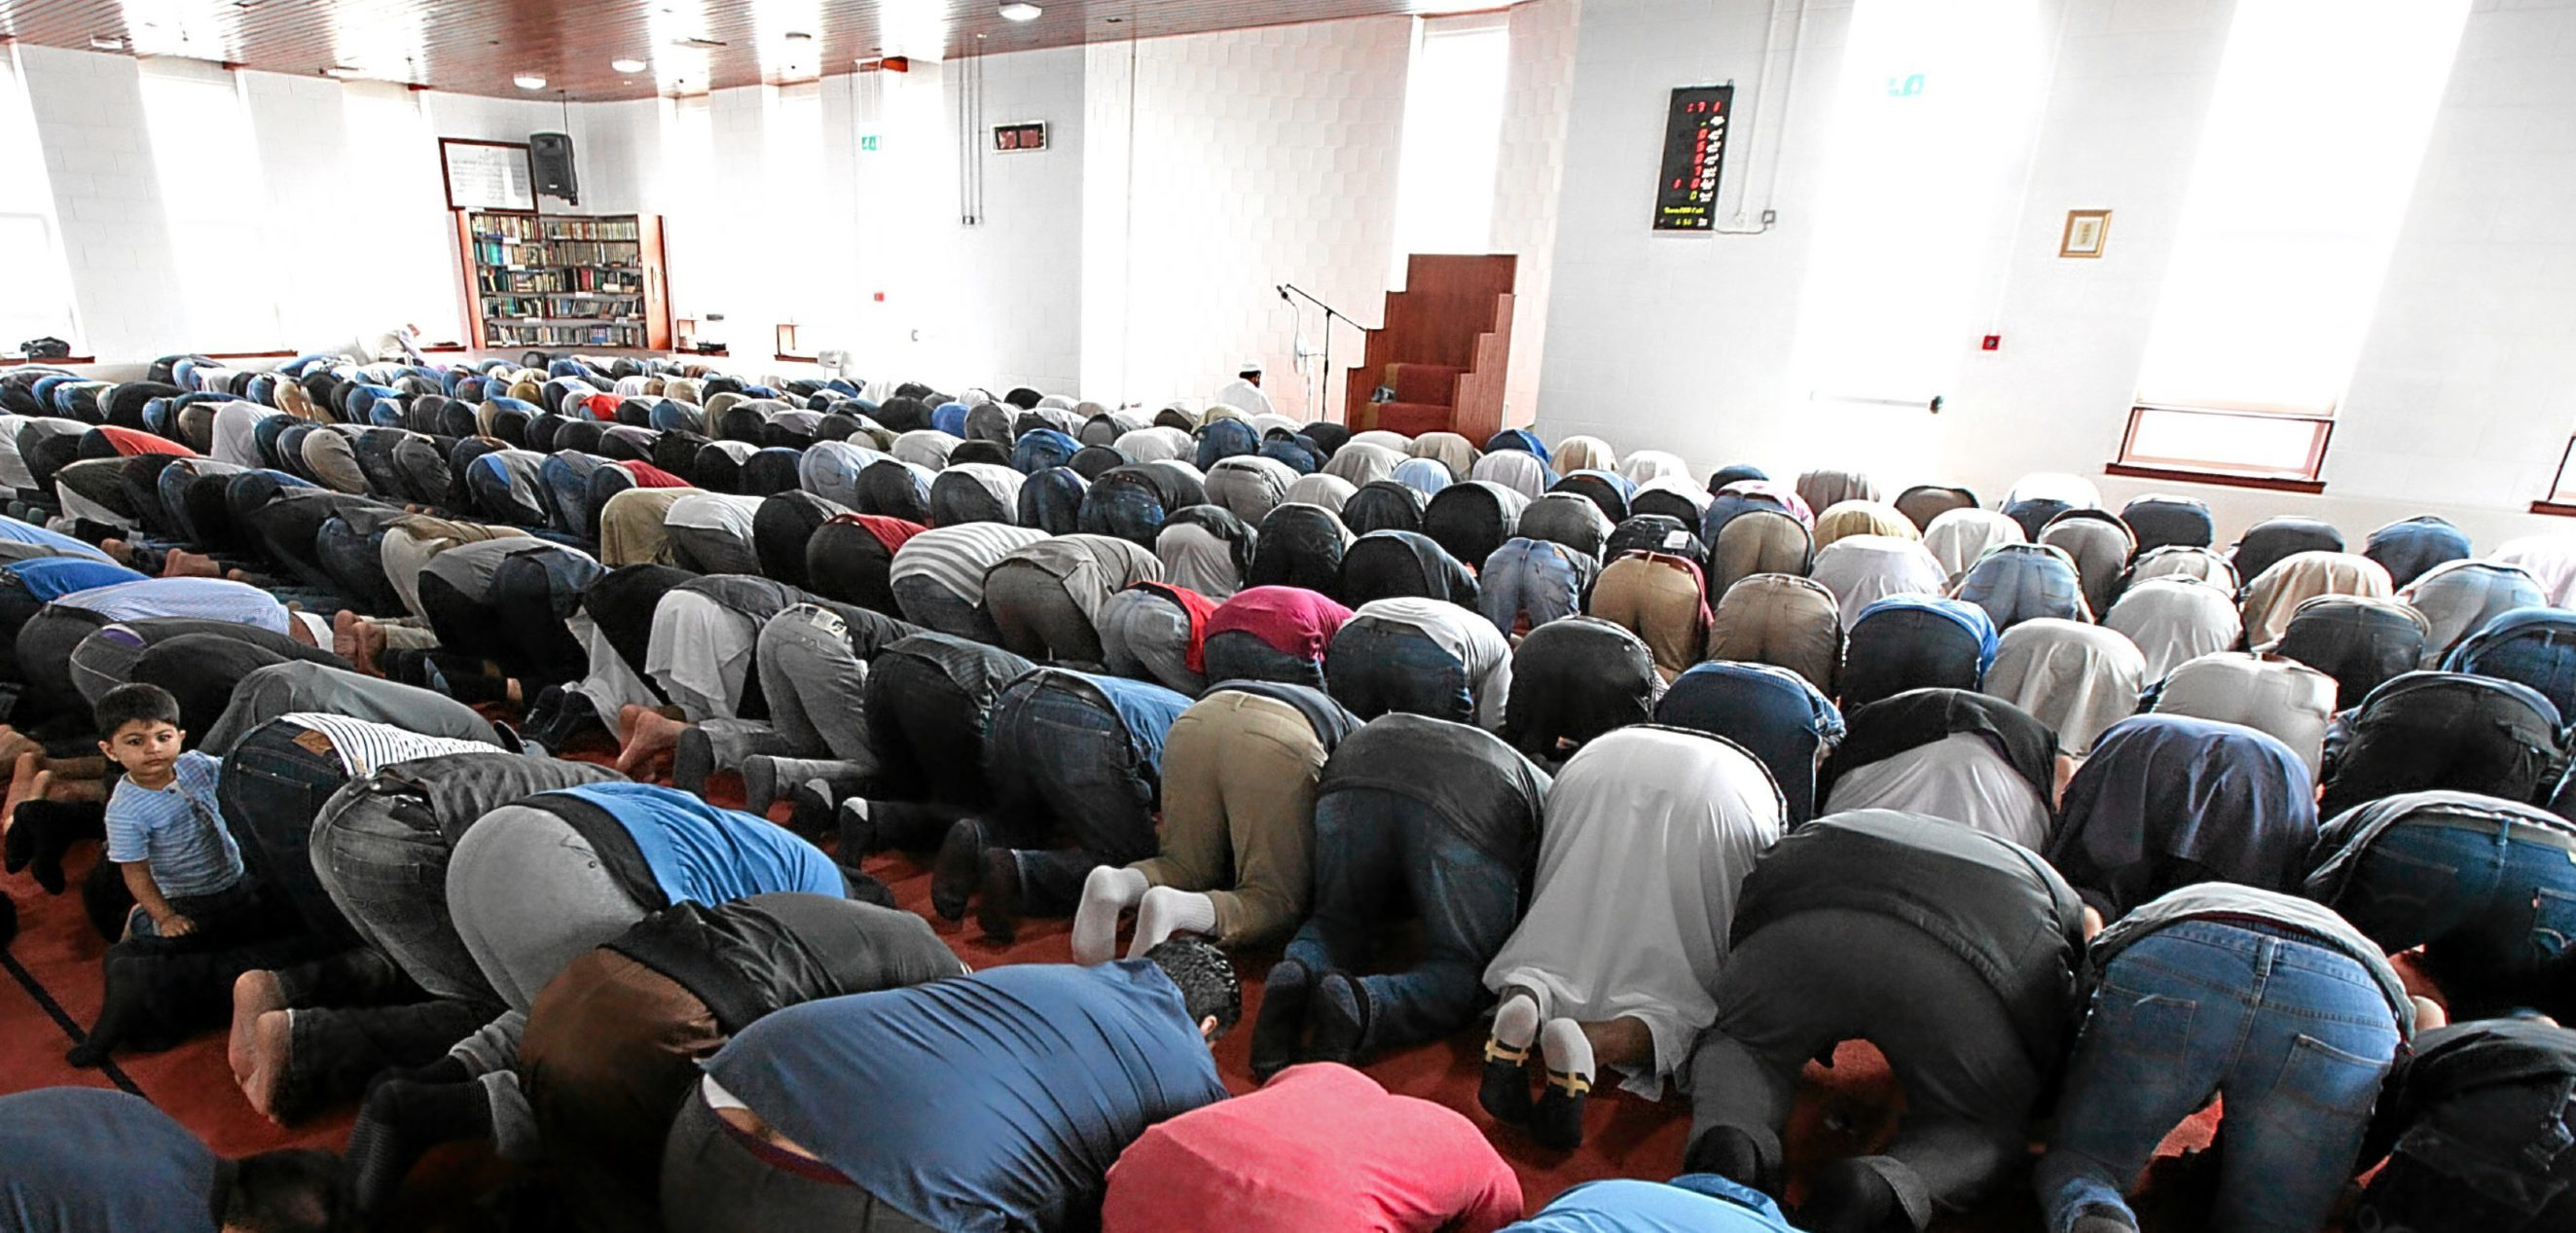 Muslims praying at another mosque.